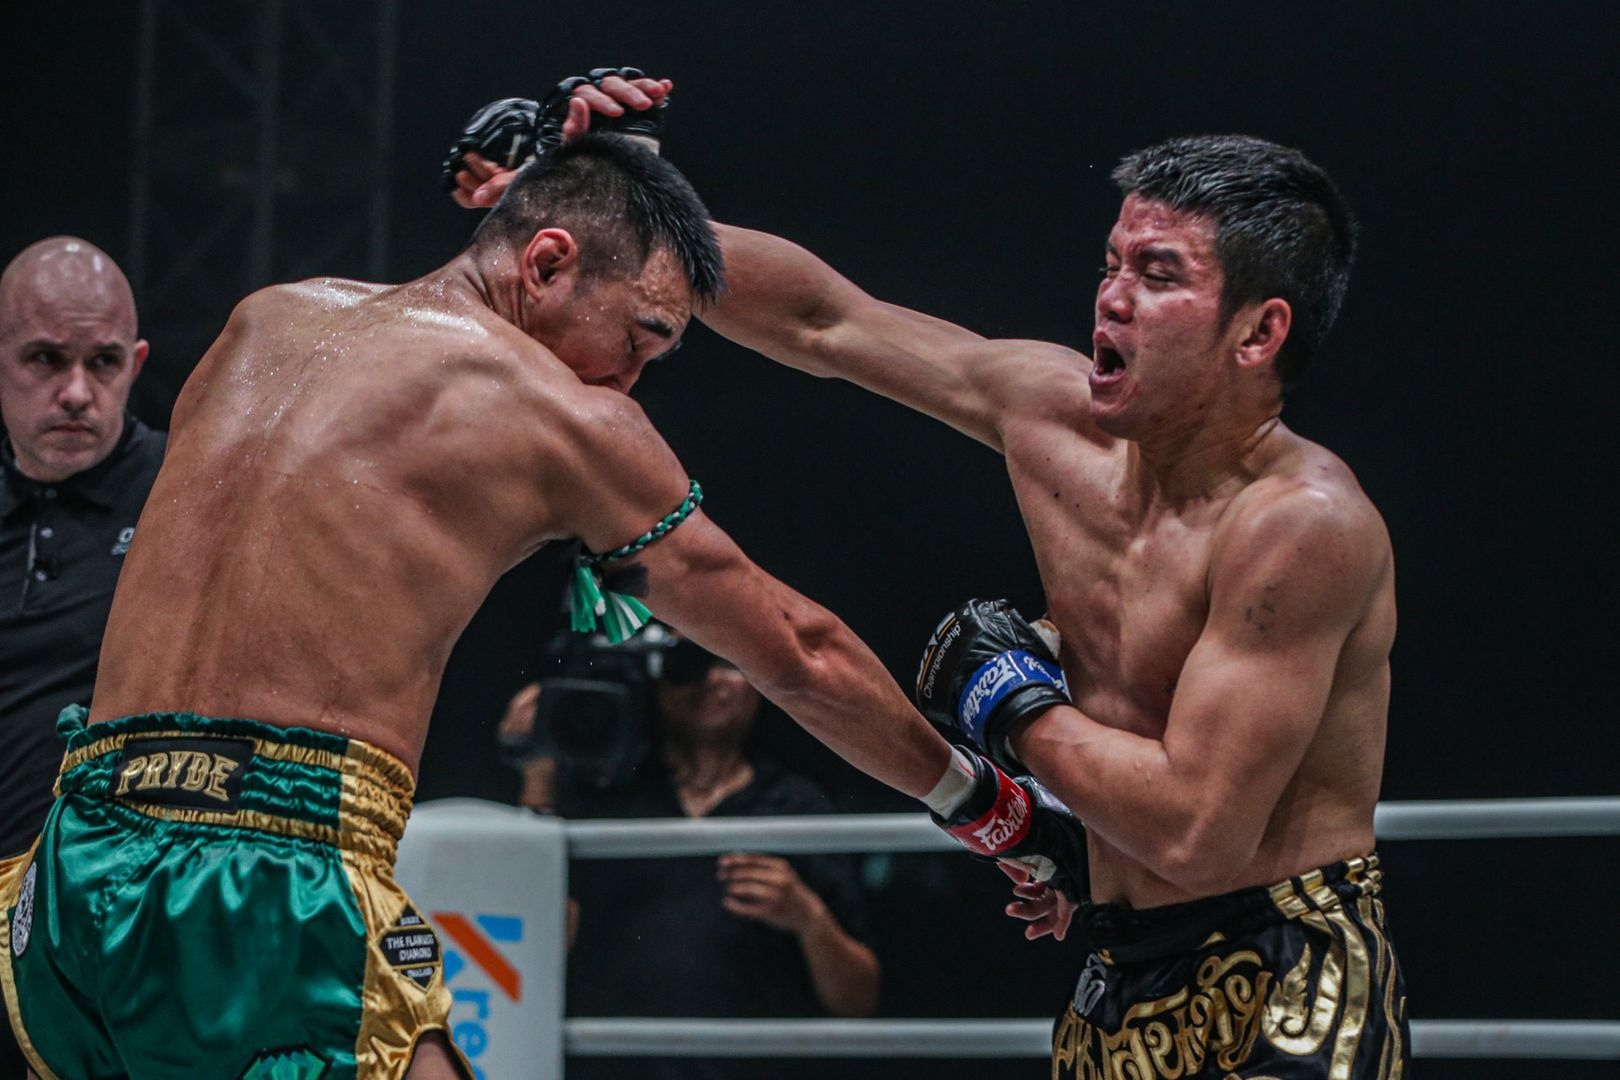 Muay Thai fighter Pongsiri PK.Saenchai Muaythaigym punches Petchmorakot Petchyindee Academy in his ONE Championship debut